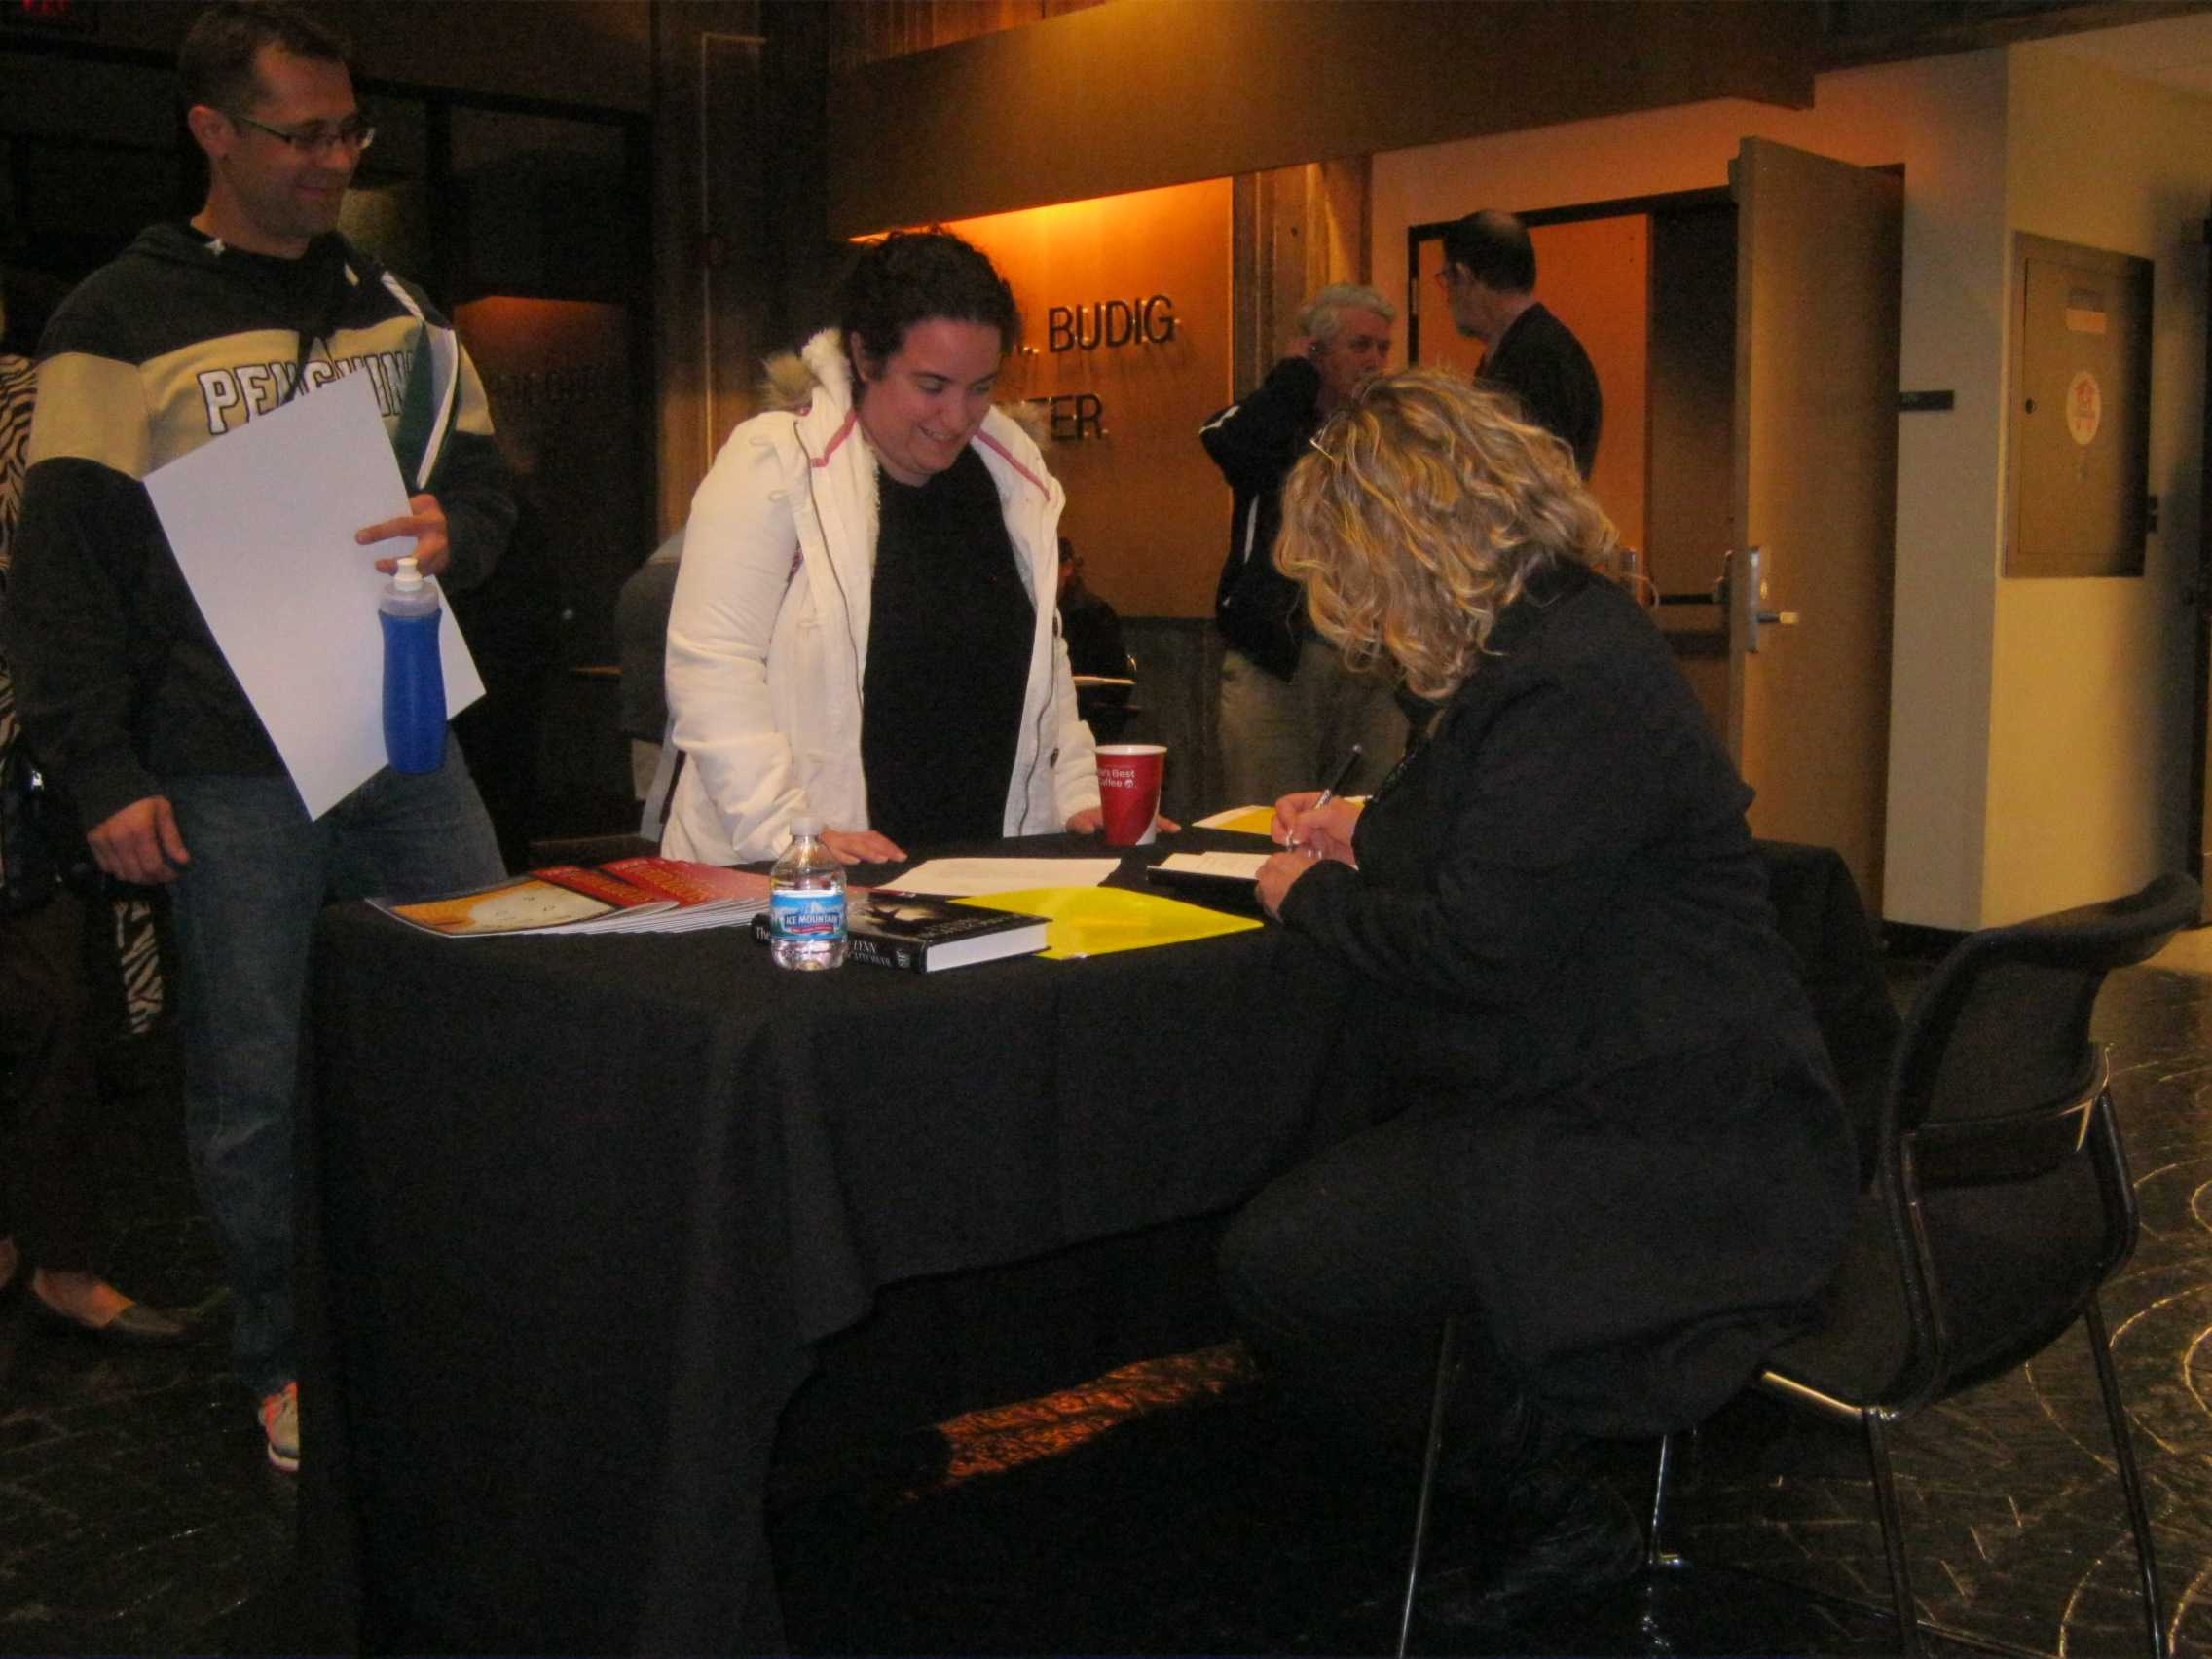 Author Lynn Hightower signs copies of her latest book at Northern Kentucky University. Hightower gave a reading of her latest novel and told the story of studying under a famous Kentucky poet to an audience on in the Otto Budig Theater on Oct. 23.